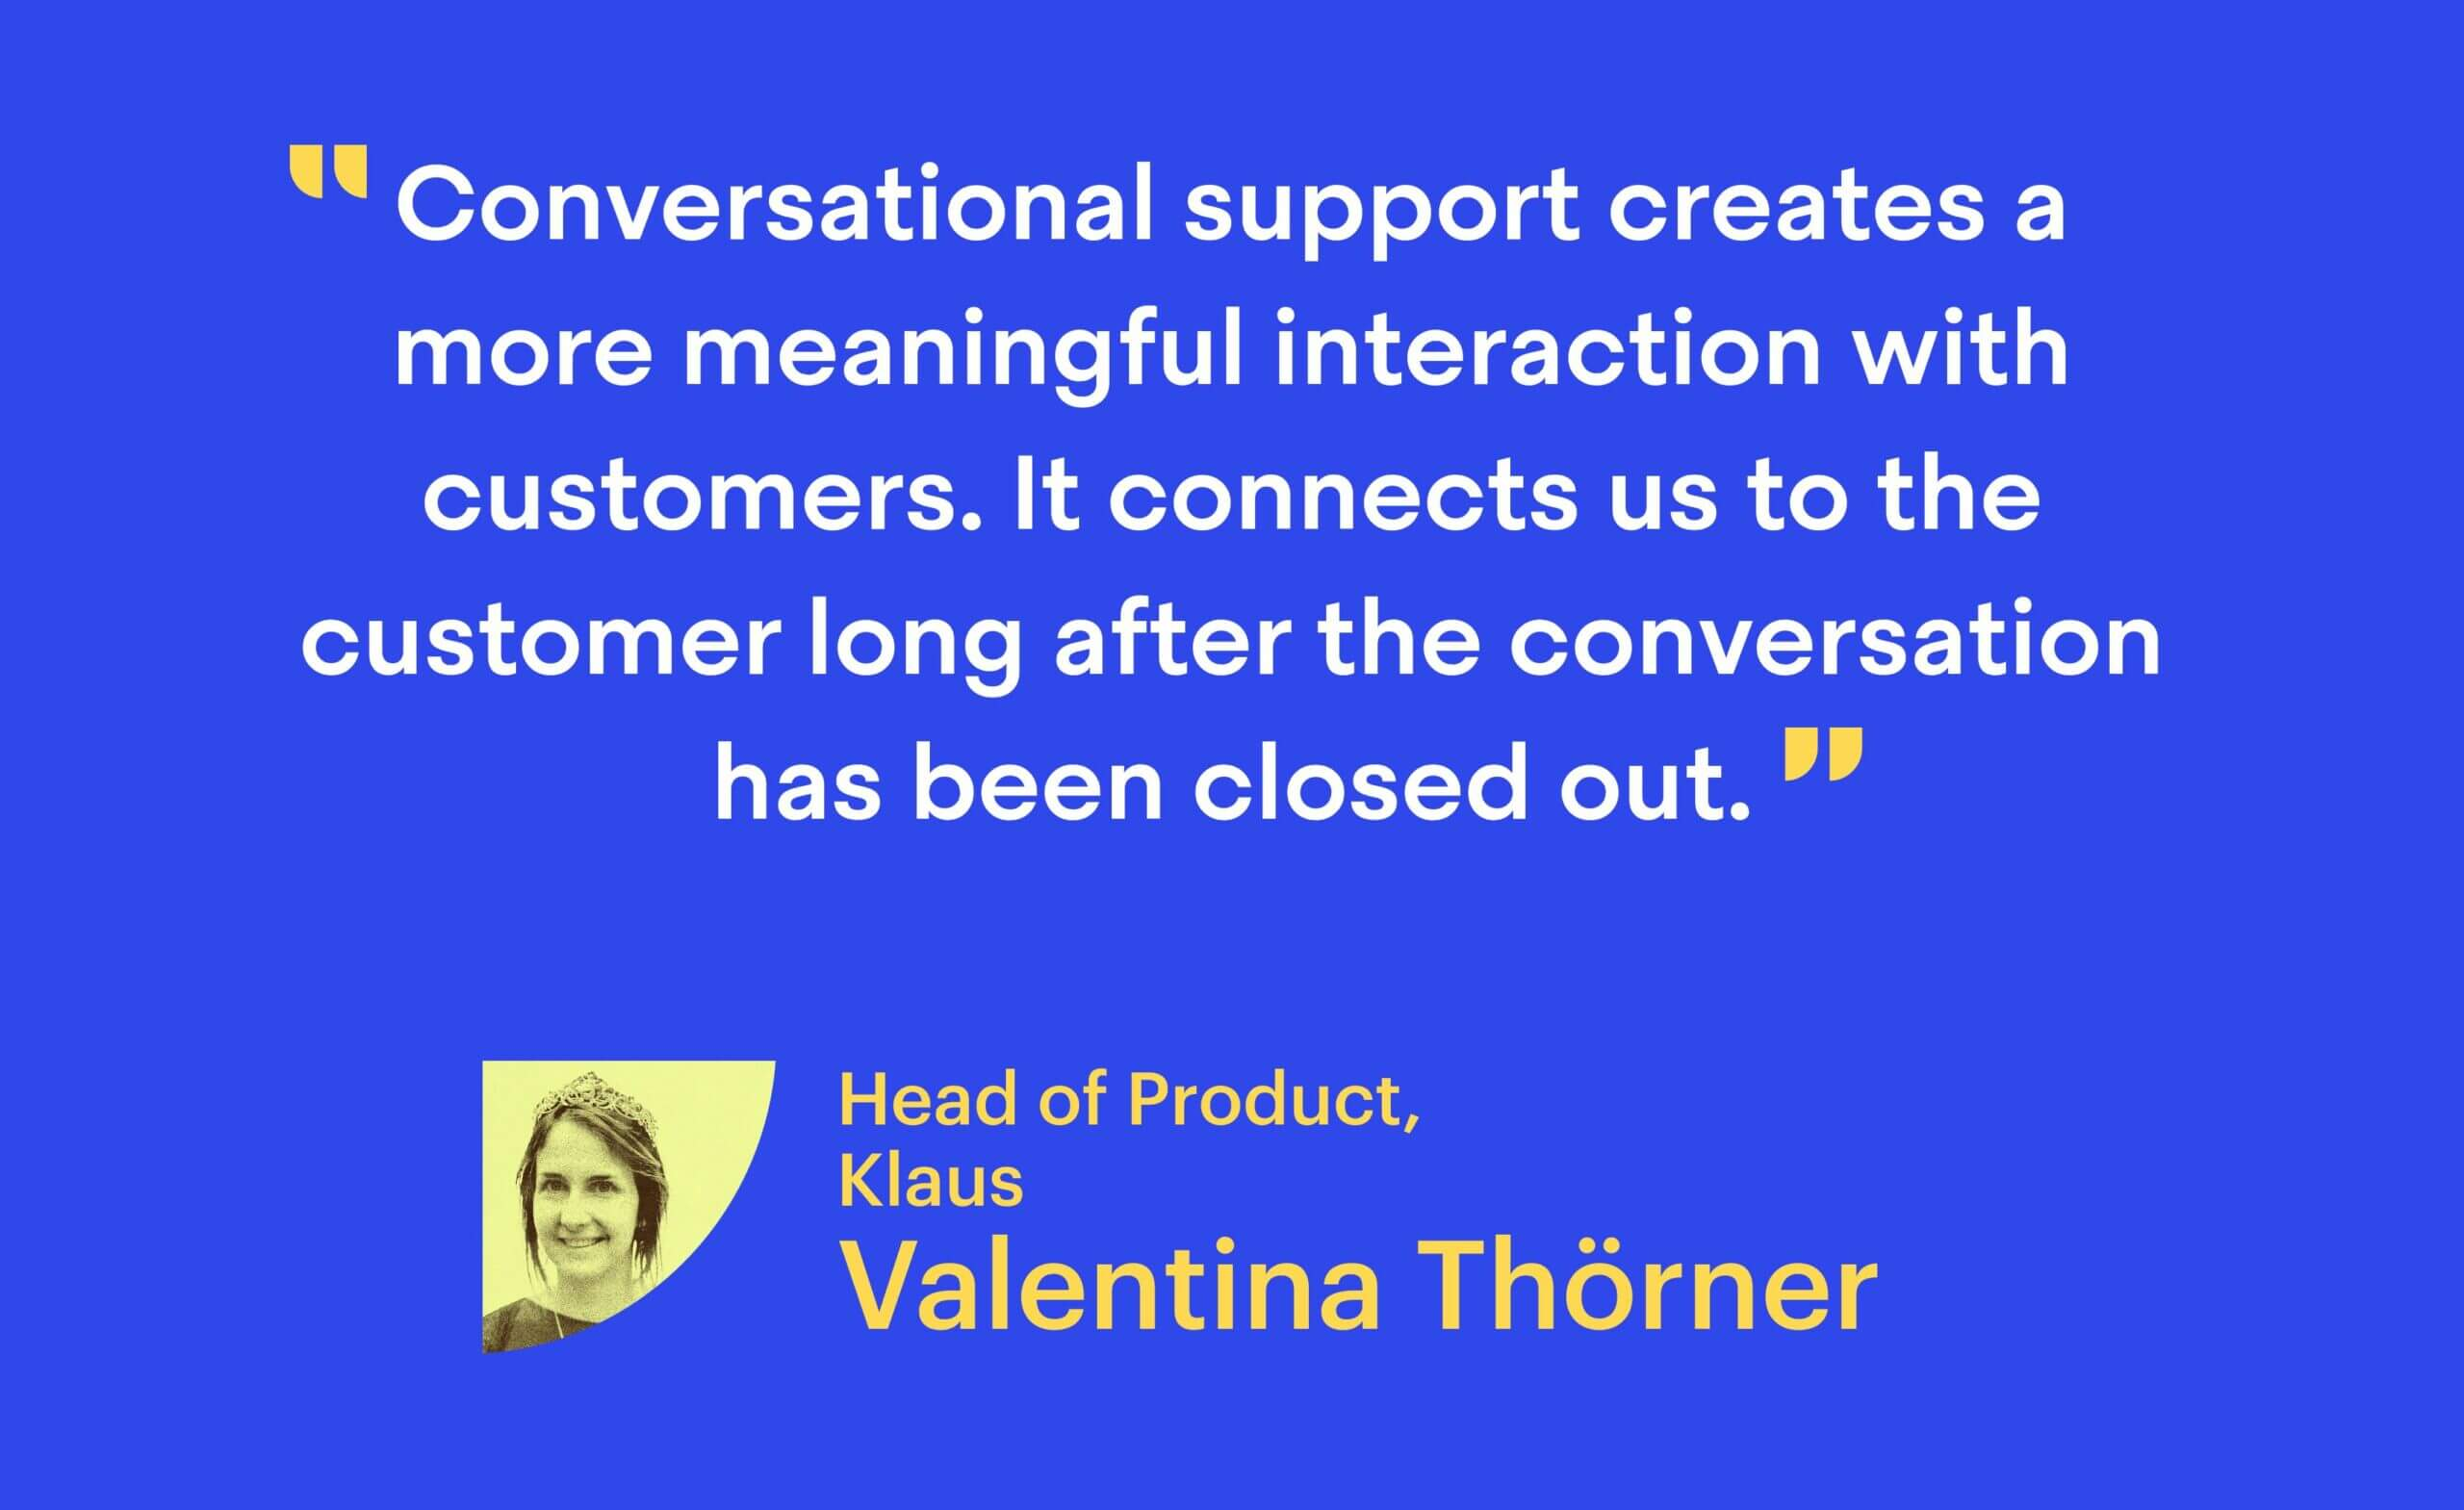 """""""Conversational support creates a more meaningful interaction with customers. It connects us to the customer long after the conversation has been closed out."""" Valentina Thörner, Head of Product at Klaus"""